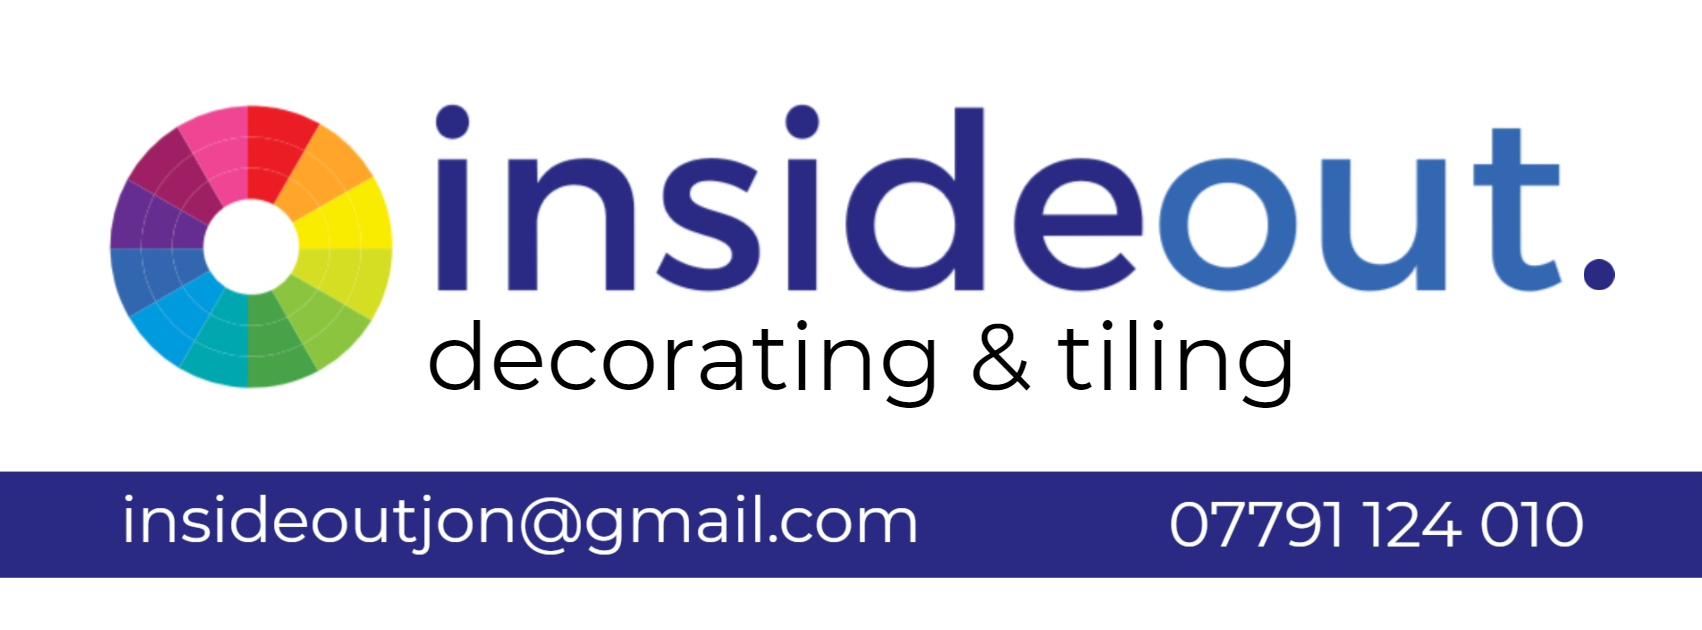 Insideout Decorating & Tiling